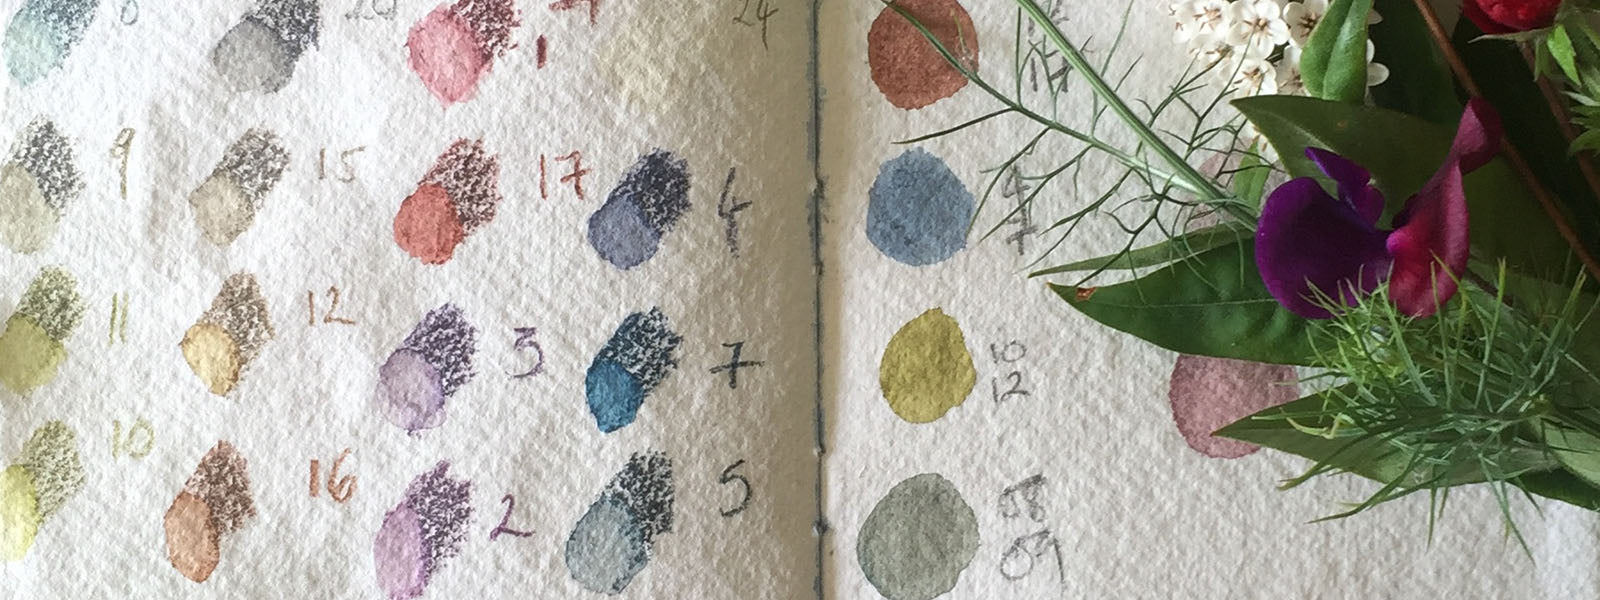 Cotton Rag Sketchbook with colour samples